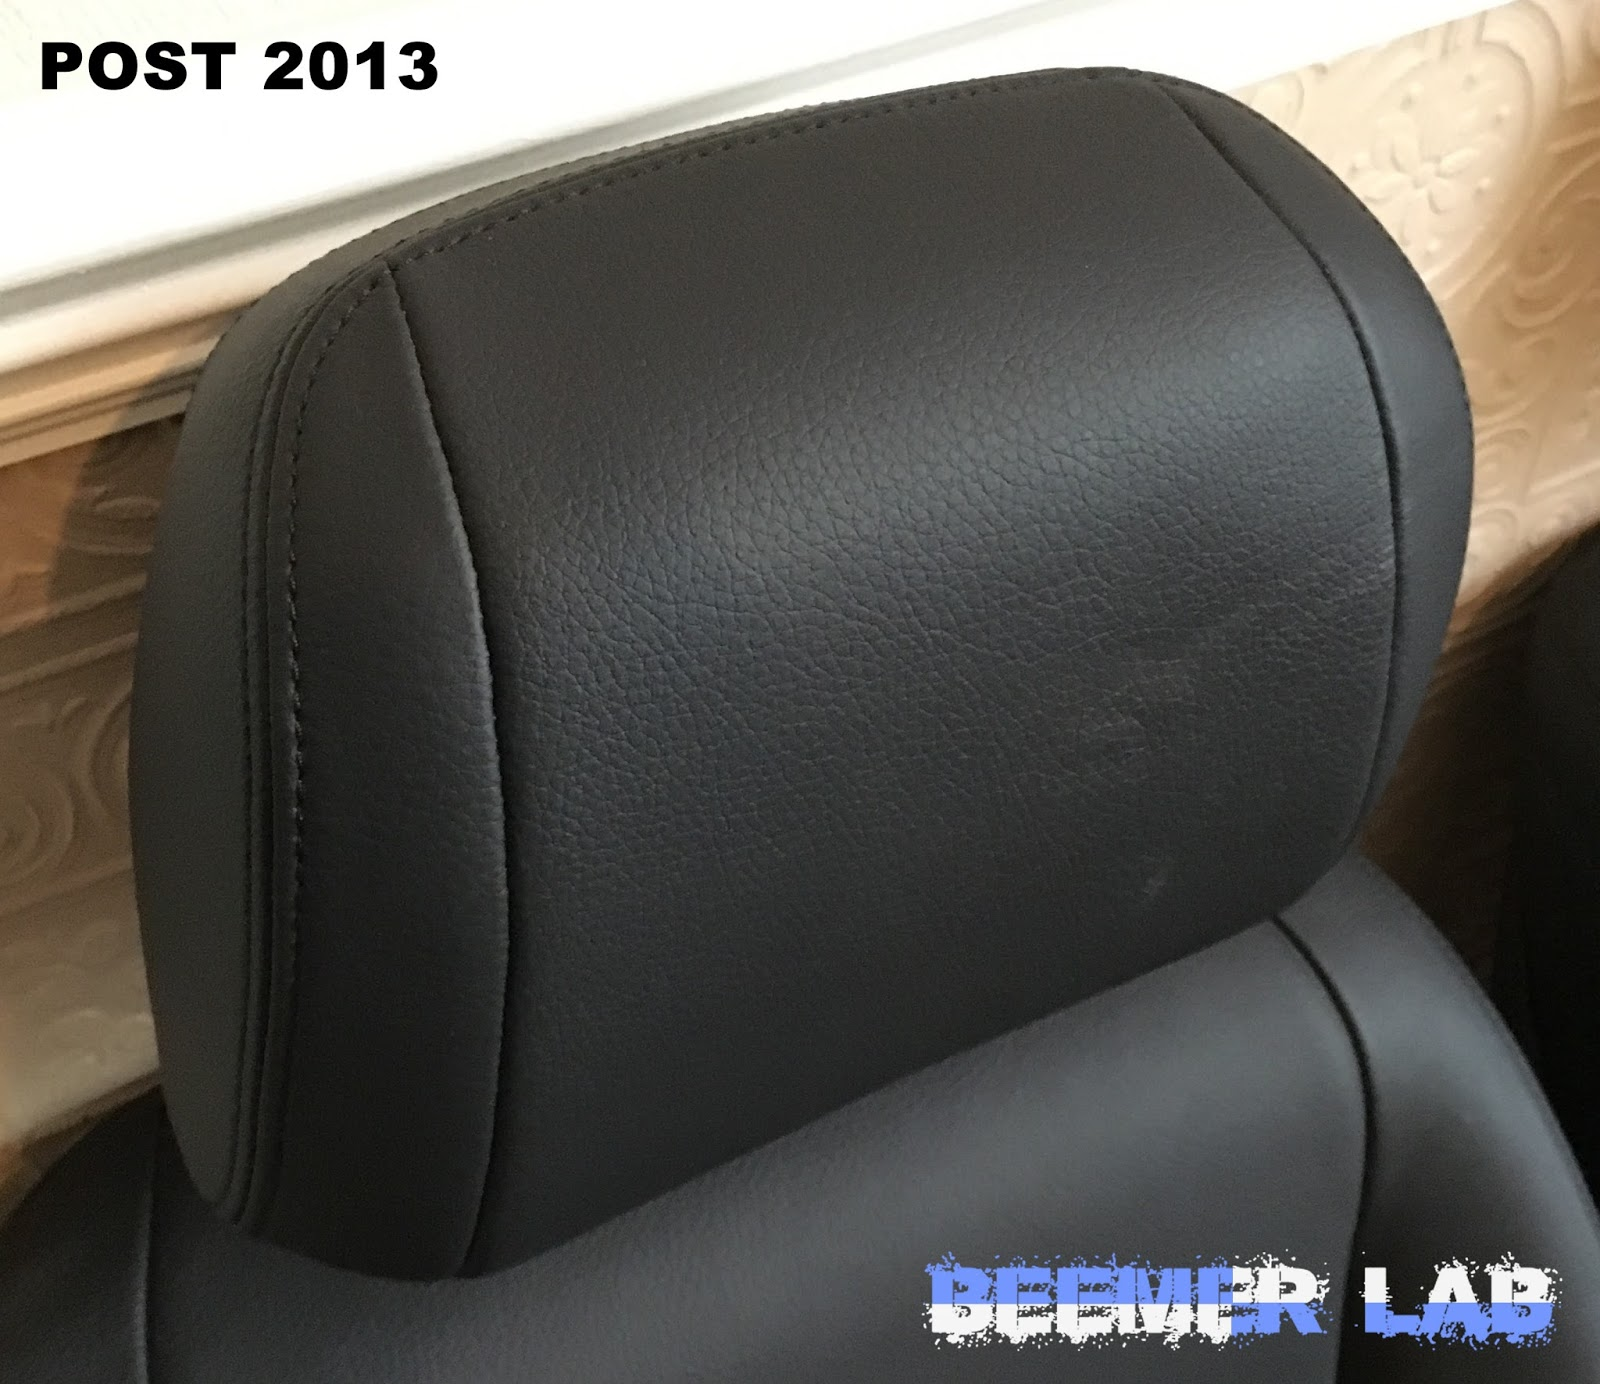 Beemer Lab F10 F11 Seat Fitment Guide Differences Between 10 13 Cars And Later Models